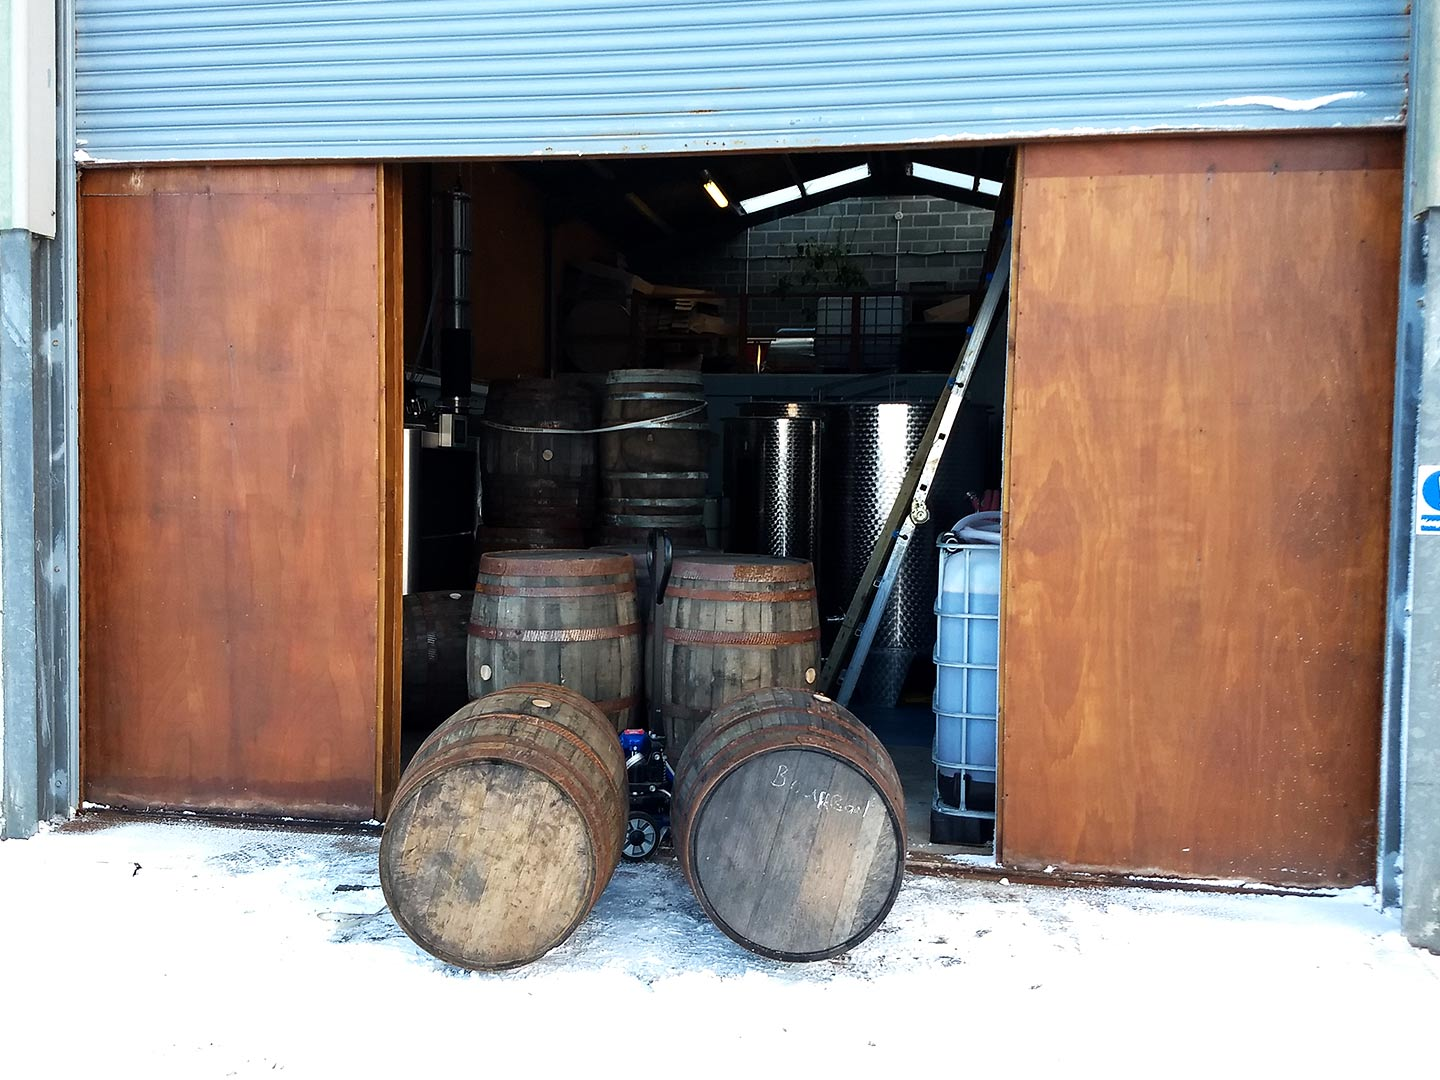 j gow rum barrels in the snow